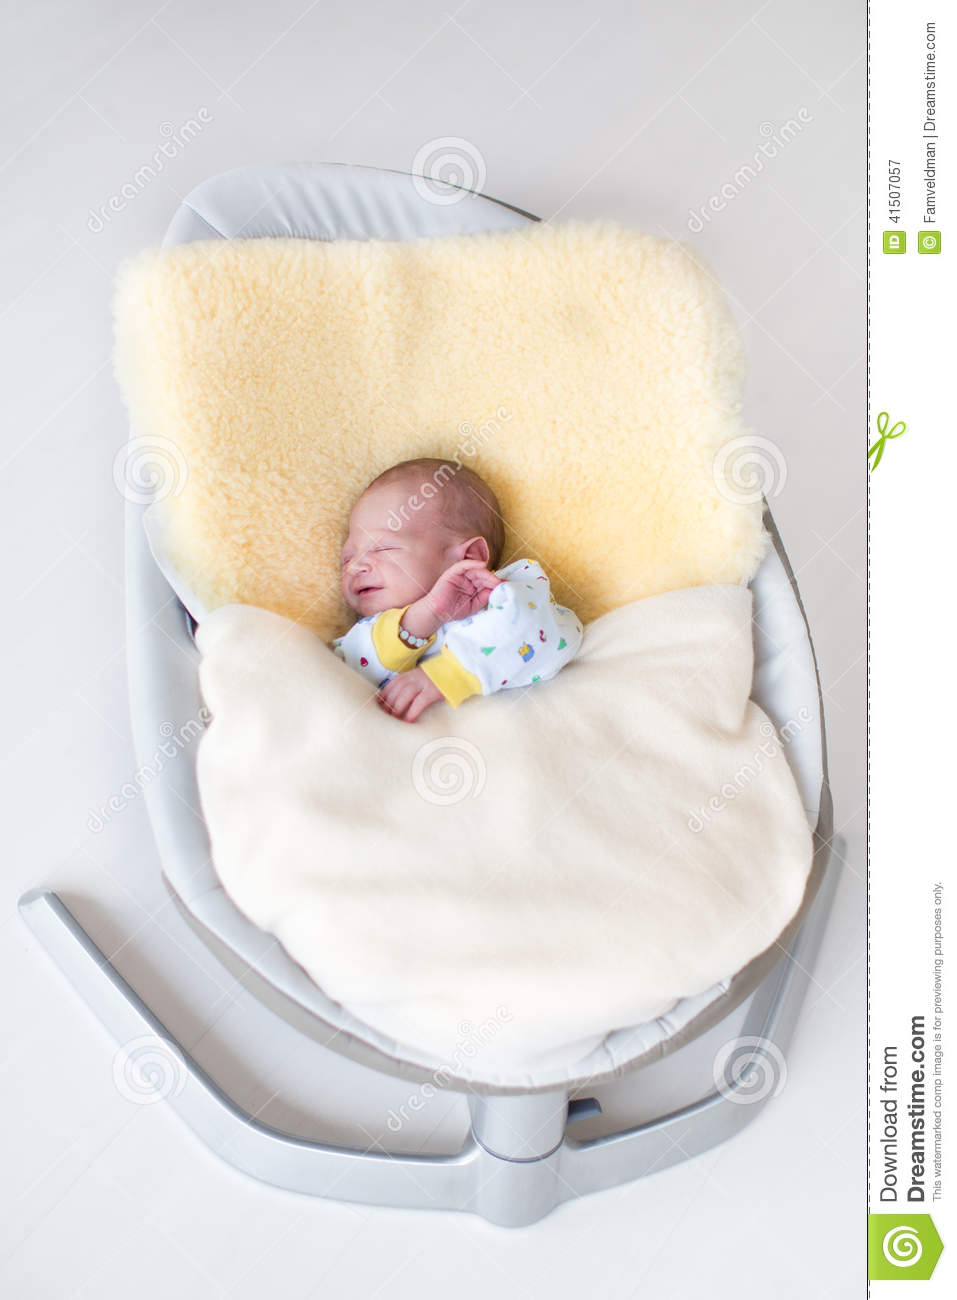 Sweet Newborn Baby Boy In Swing On A Sheepskin Stock Photo